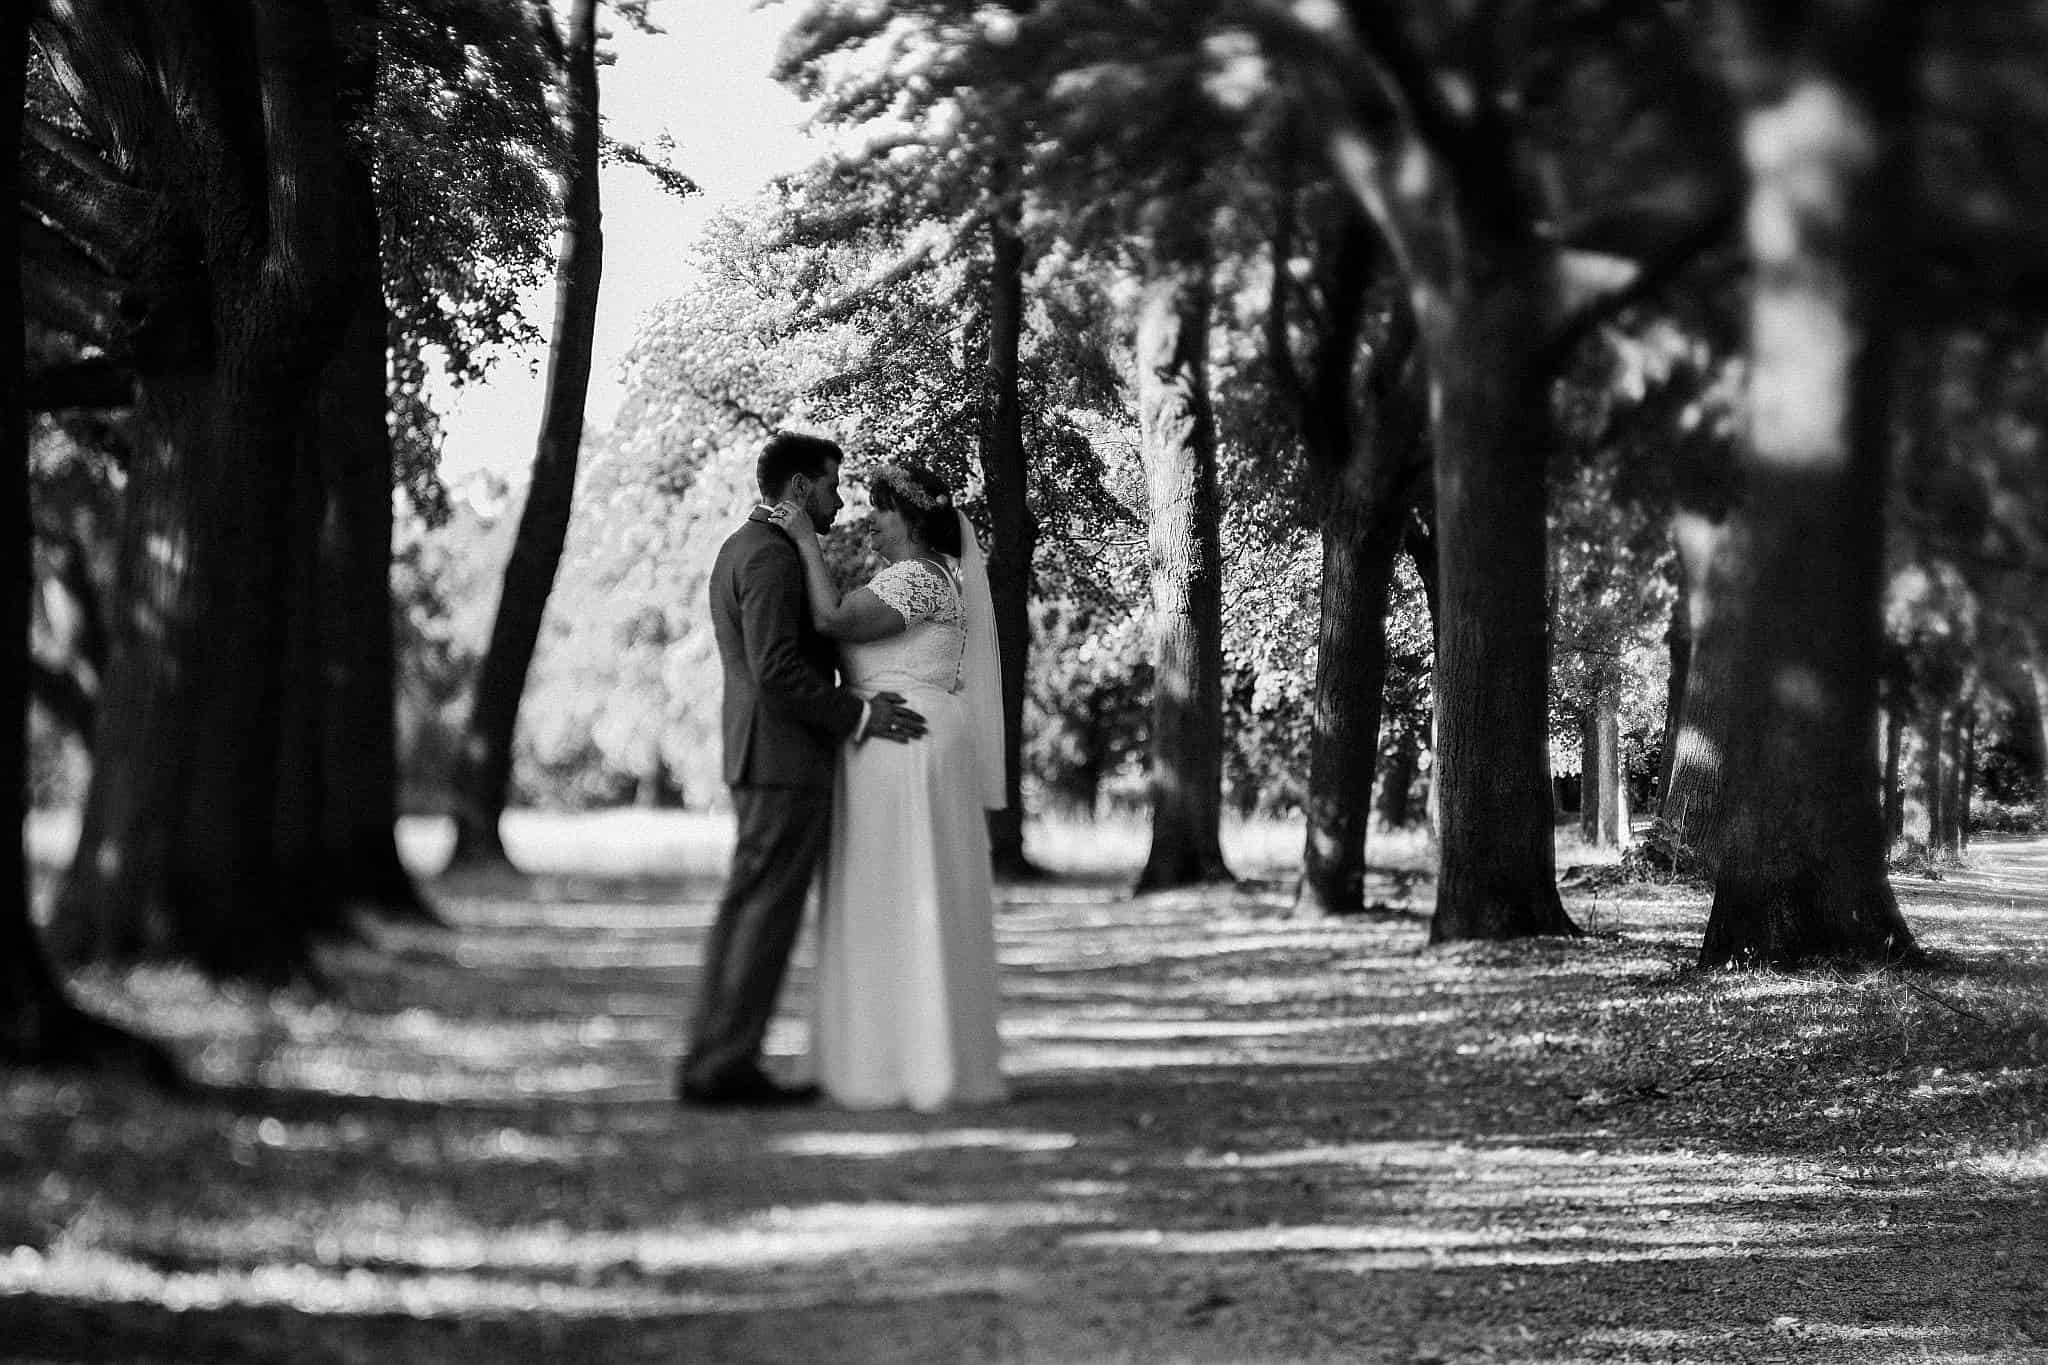 Heiraten in Worms